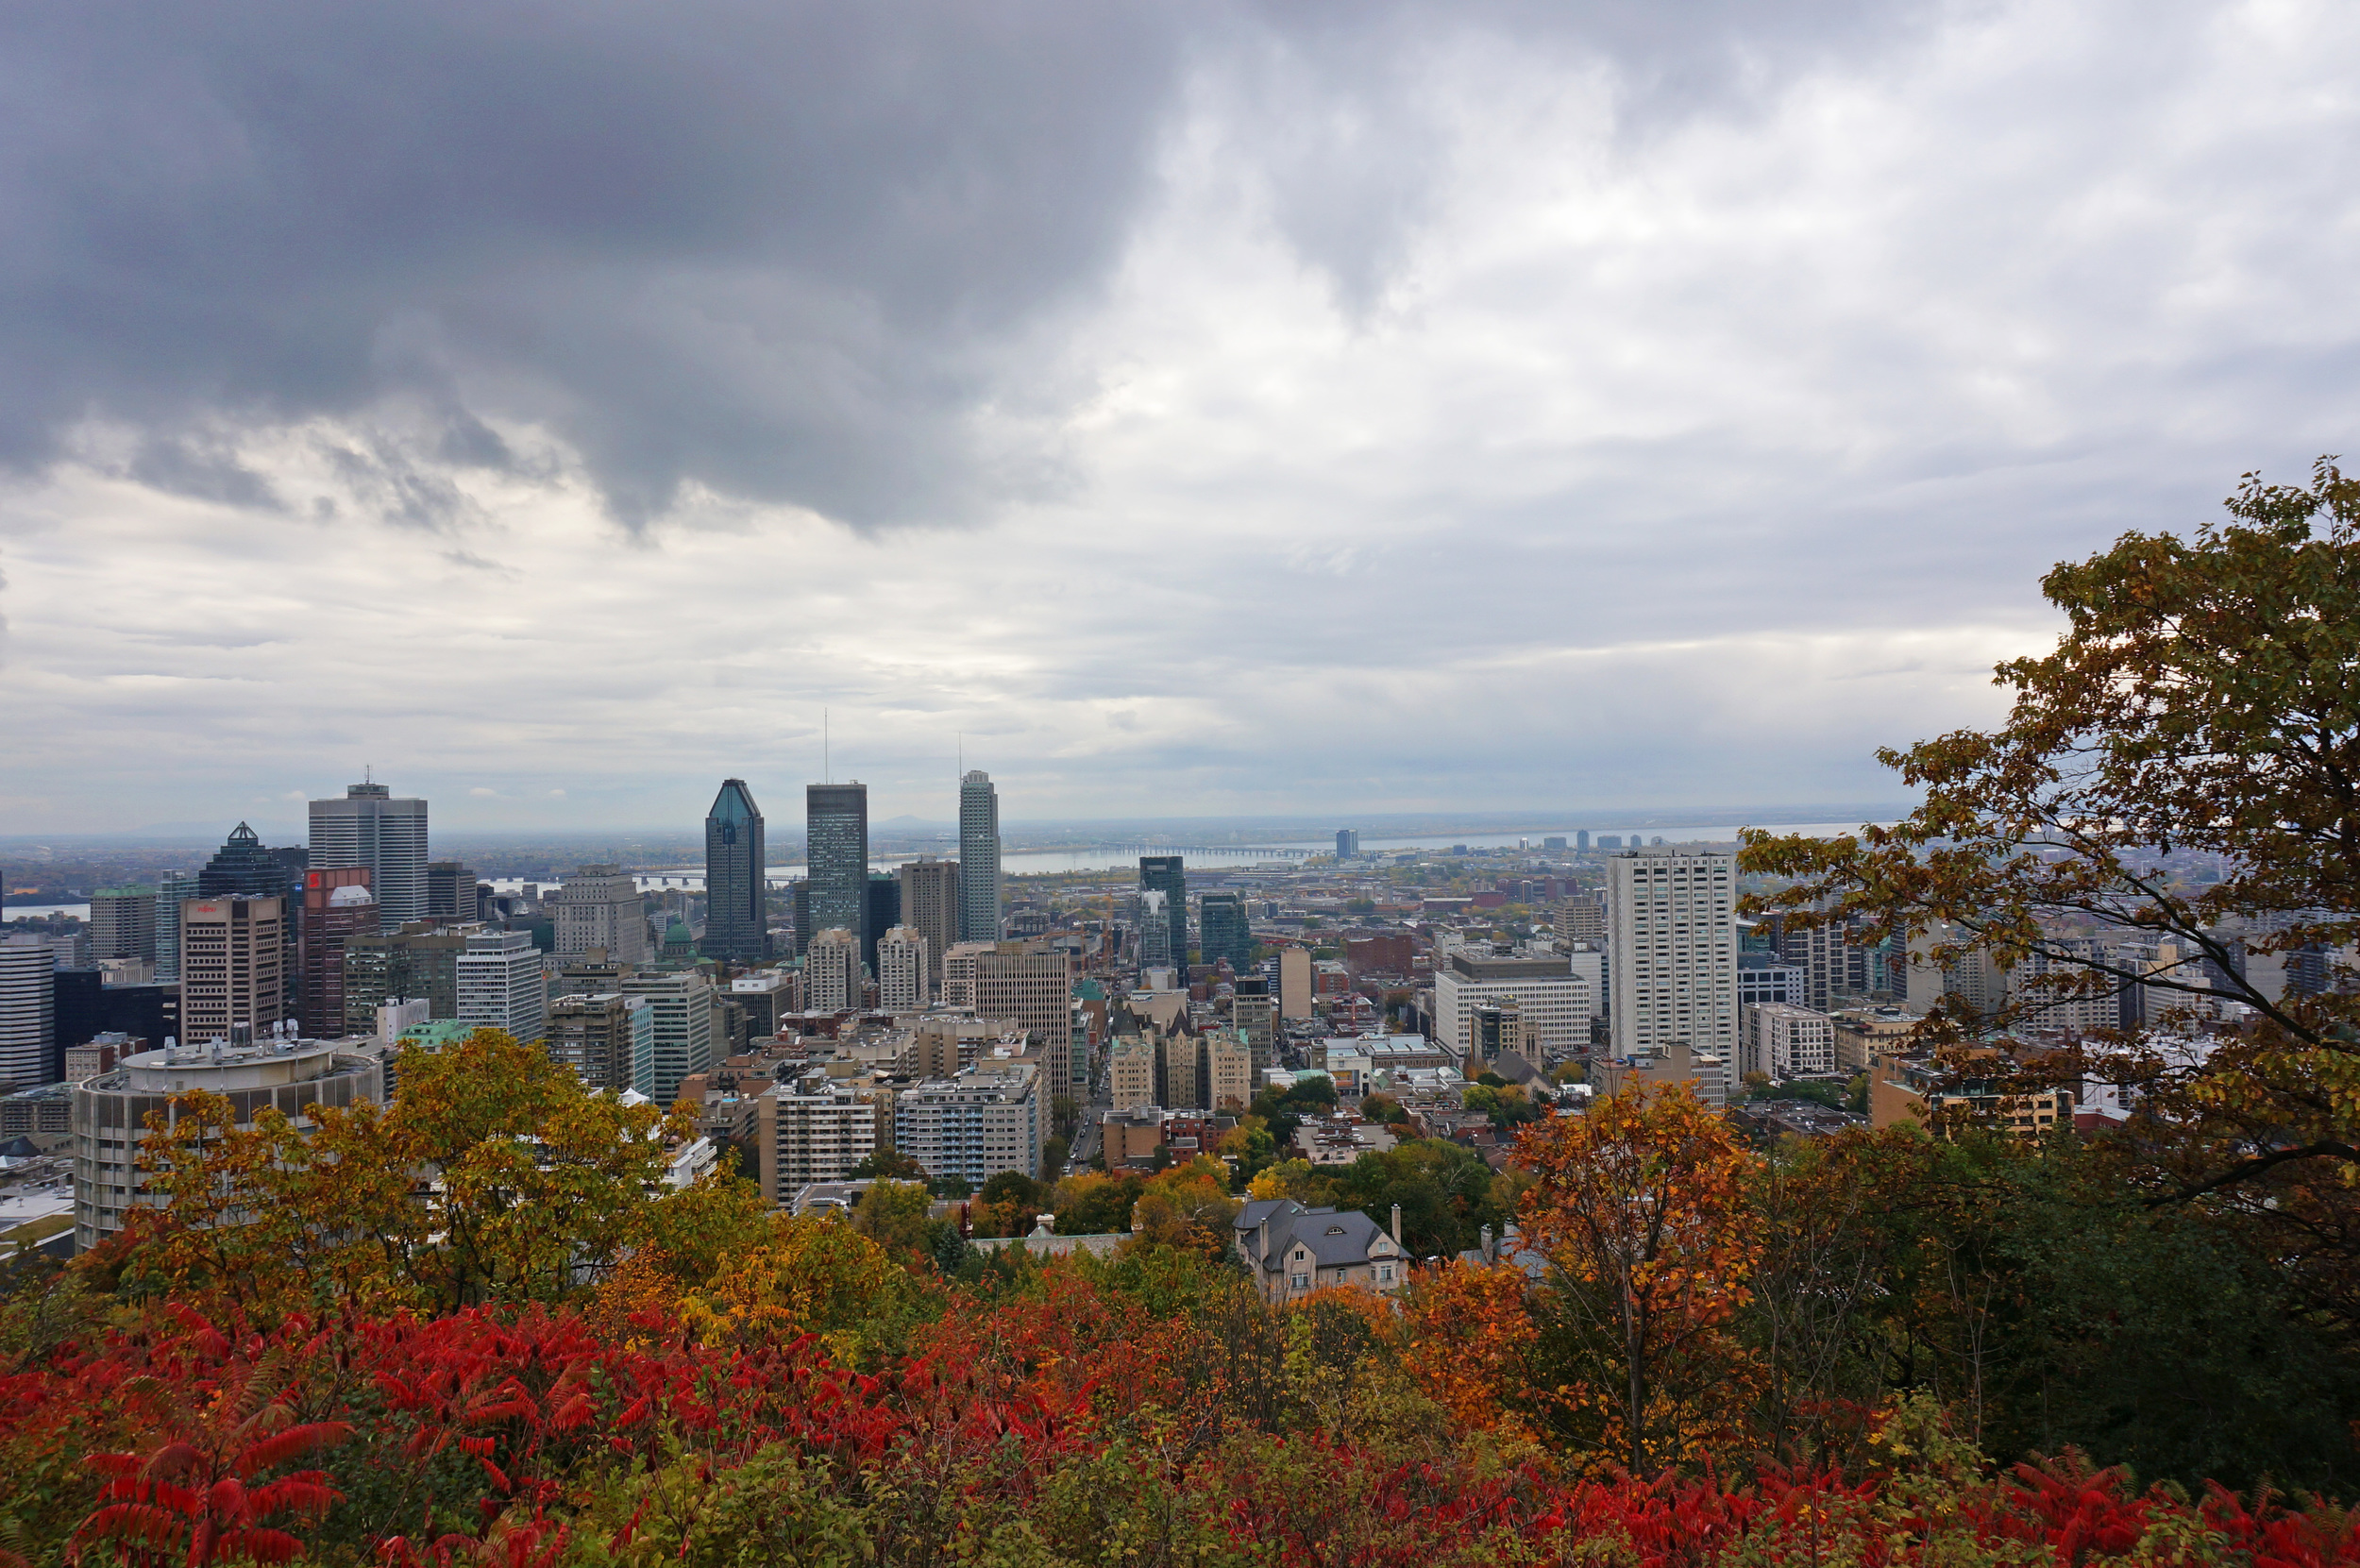 Mount Royal Park, Montreal